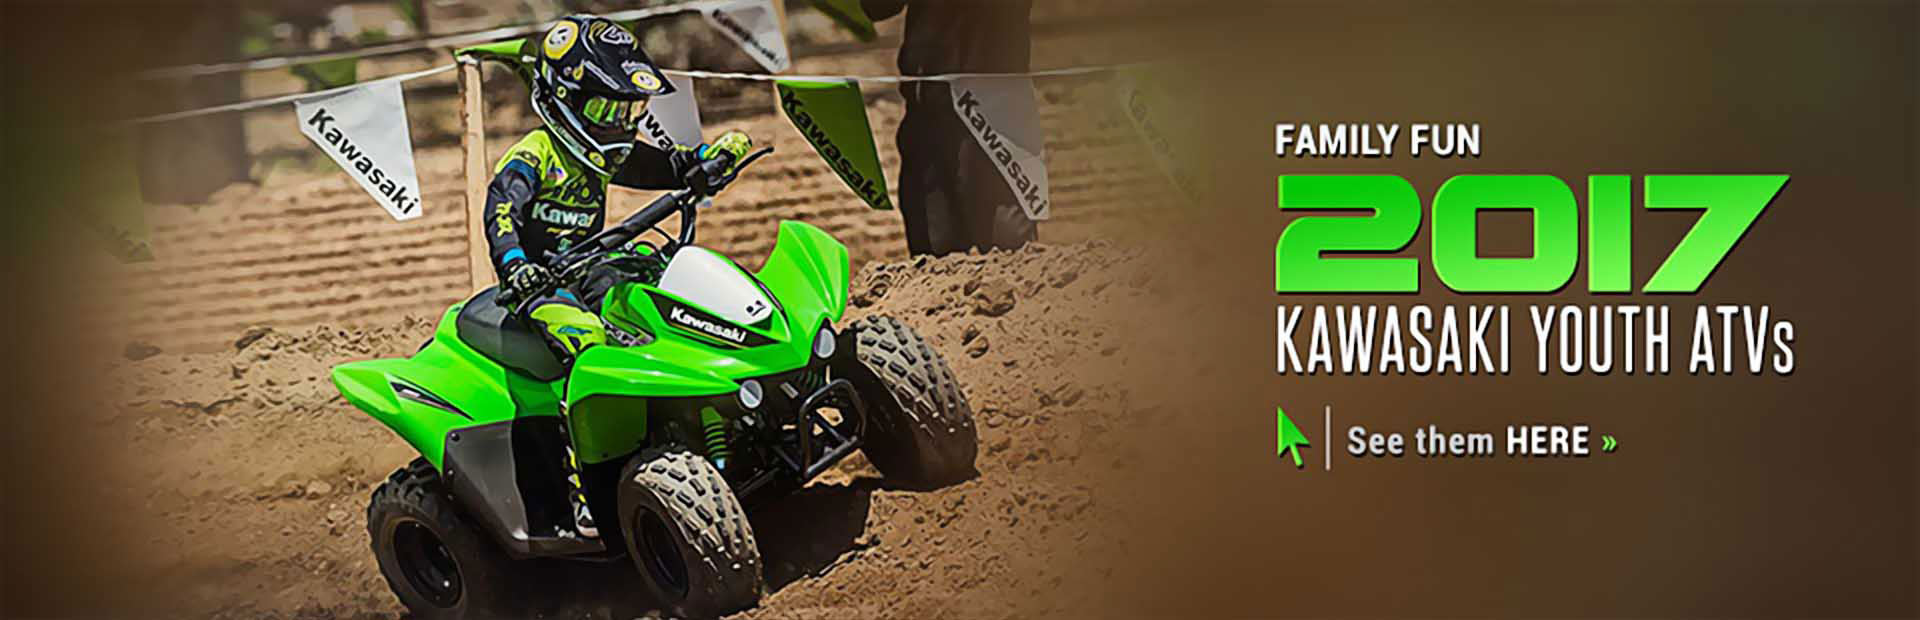 Click here to view the 2017 Kawasaki youth ATVs!